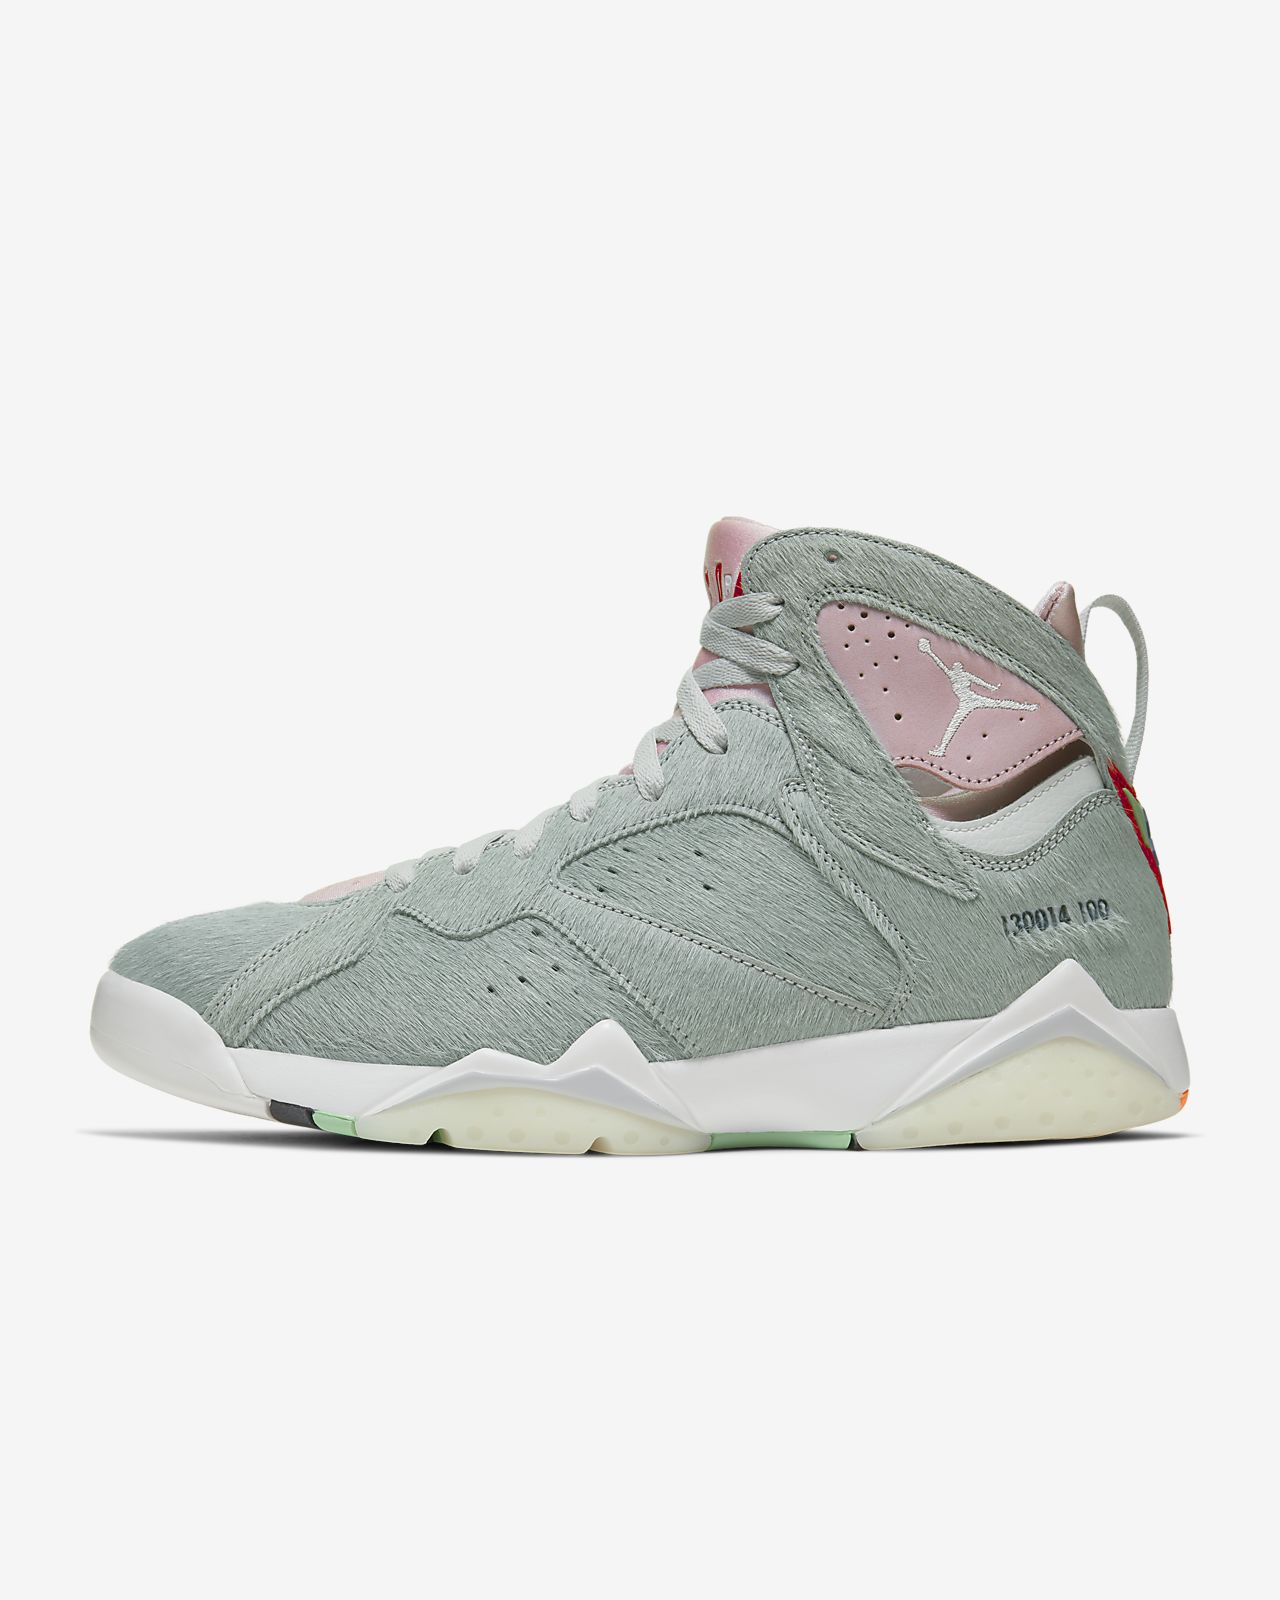 Air Jordan 7 Retro SE Shoe